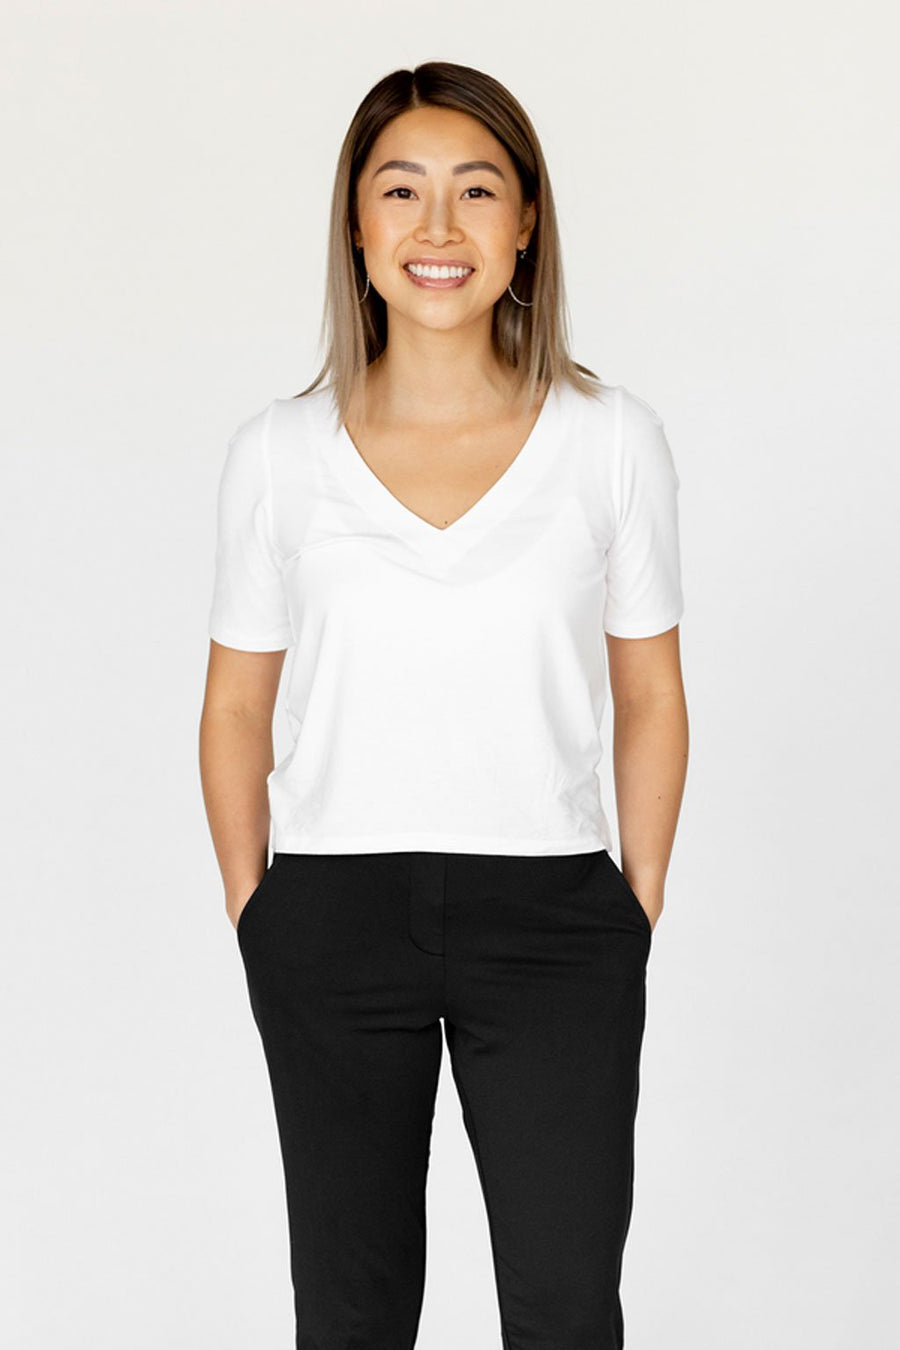 The Everyday Top - White + Black